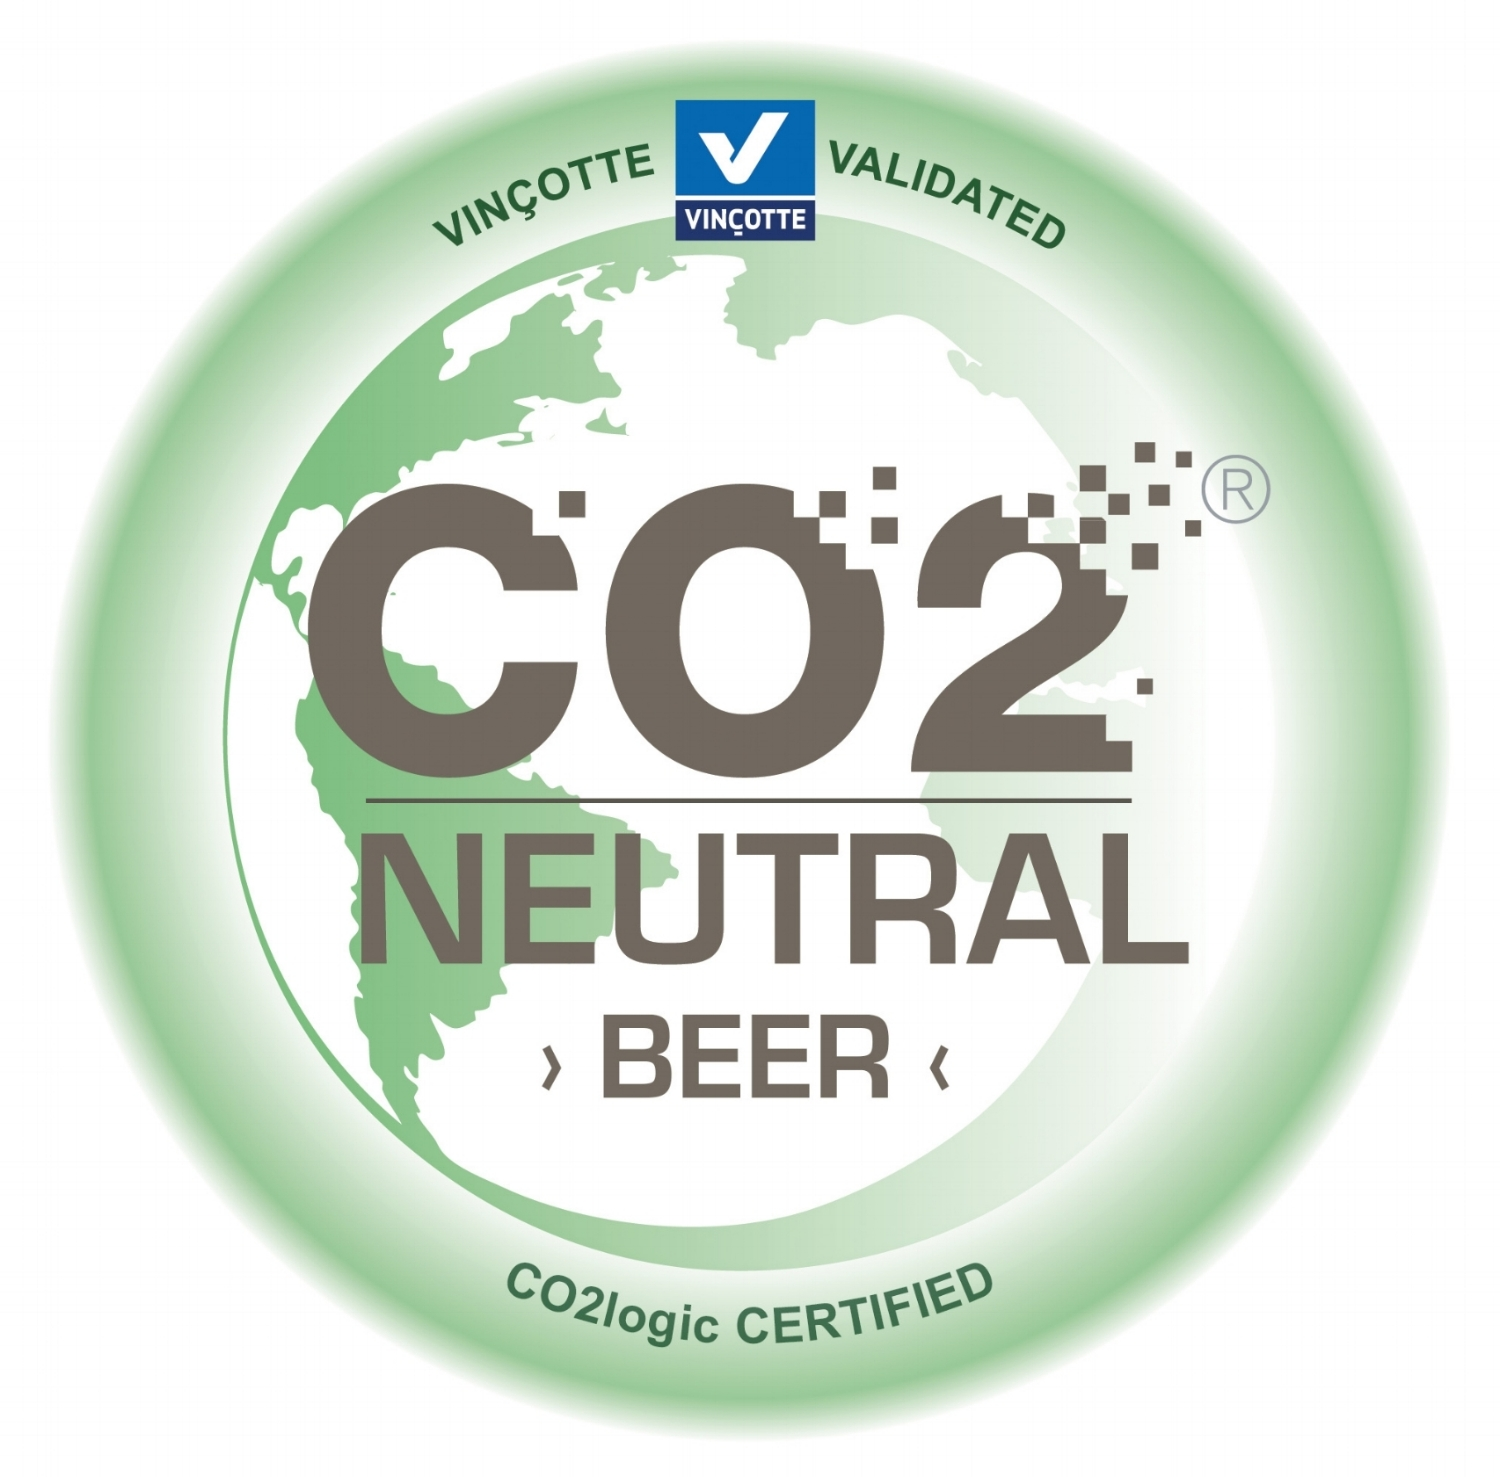 2018_CO2 Neutral BEER.jpg